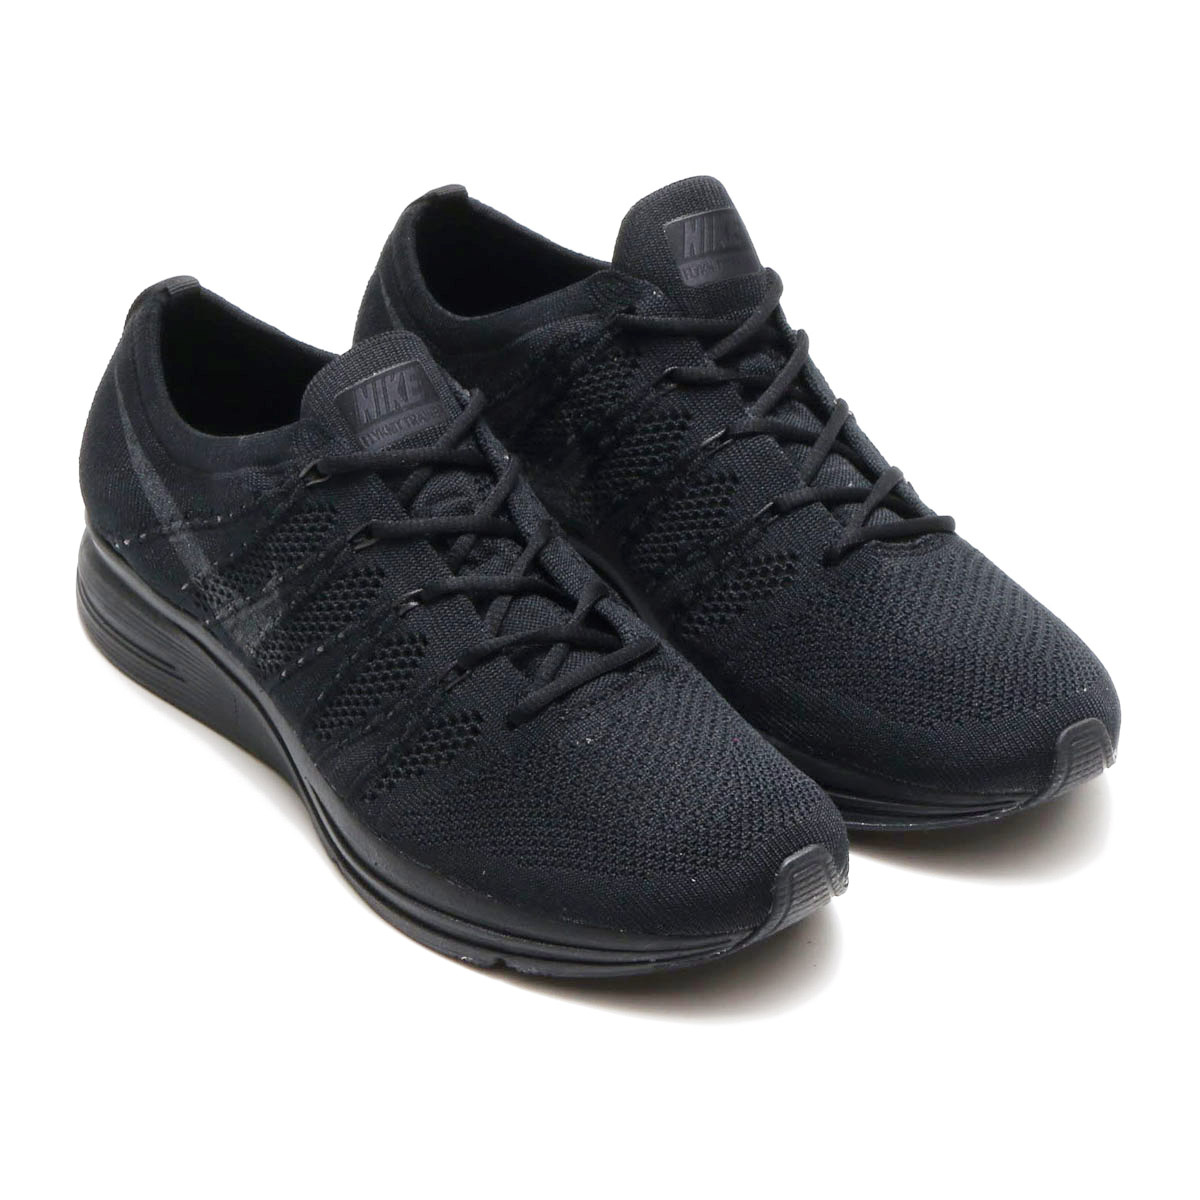 NIKE FLYKNIT TRAINER(ナイキ フライニット トレーナー)(BLACK/ANTHRACITE-BLACK)18SP-S